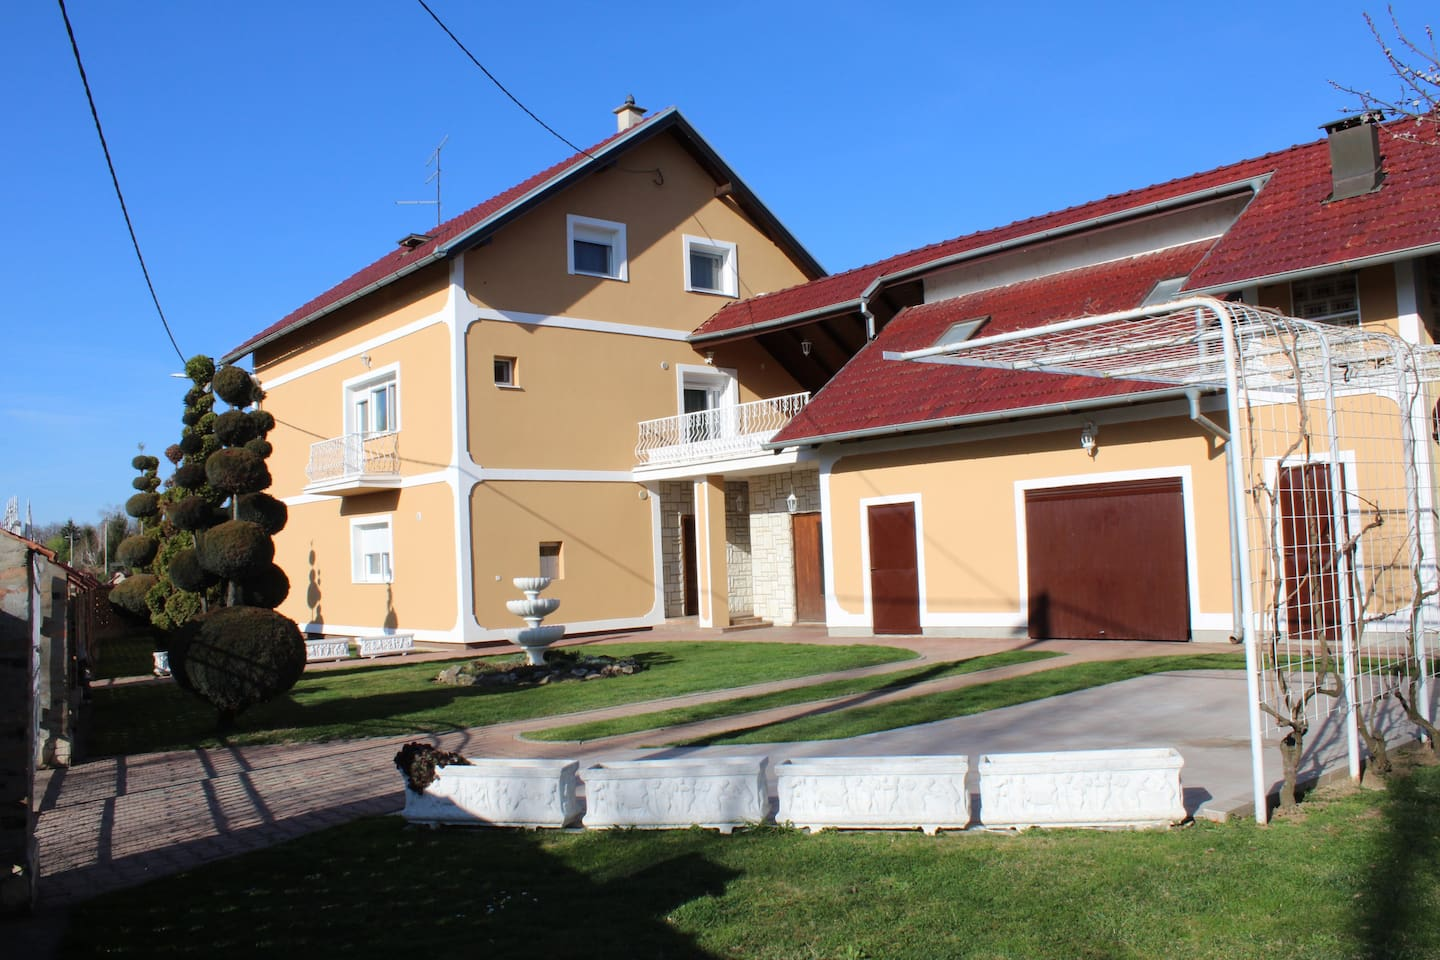 Holiday house in a quiet place in Slavonia surrounded by nature.